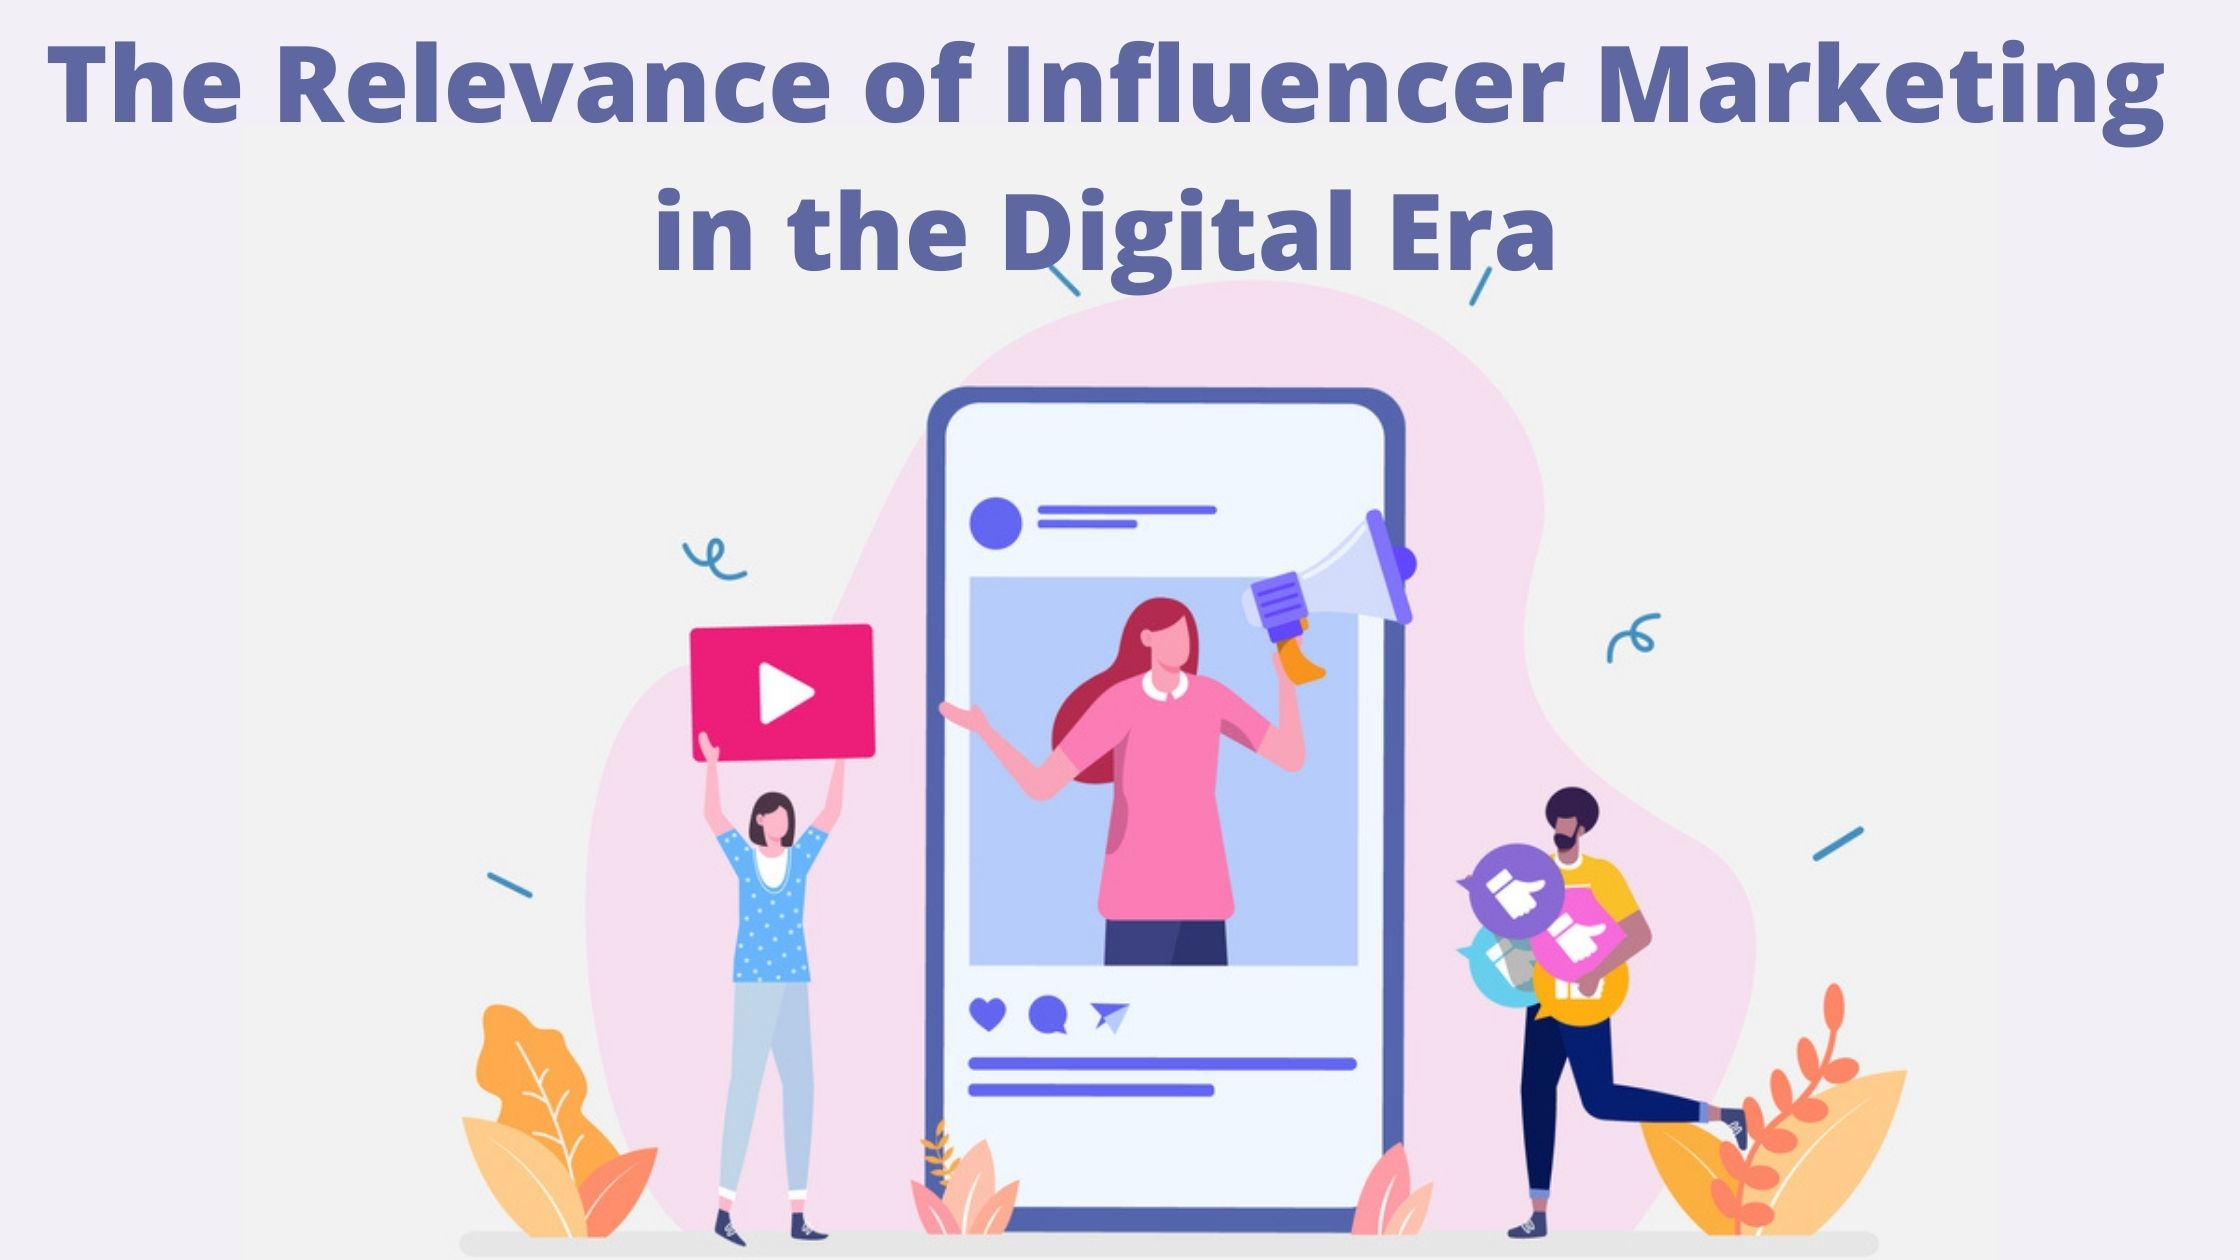 The Relevance of Influencer Marketing in the Digital Era